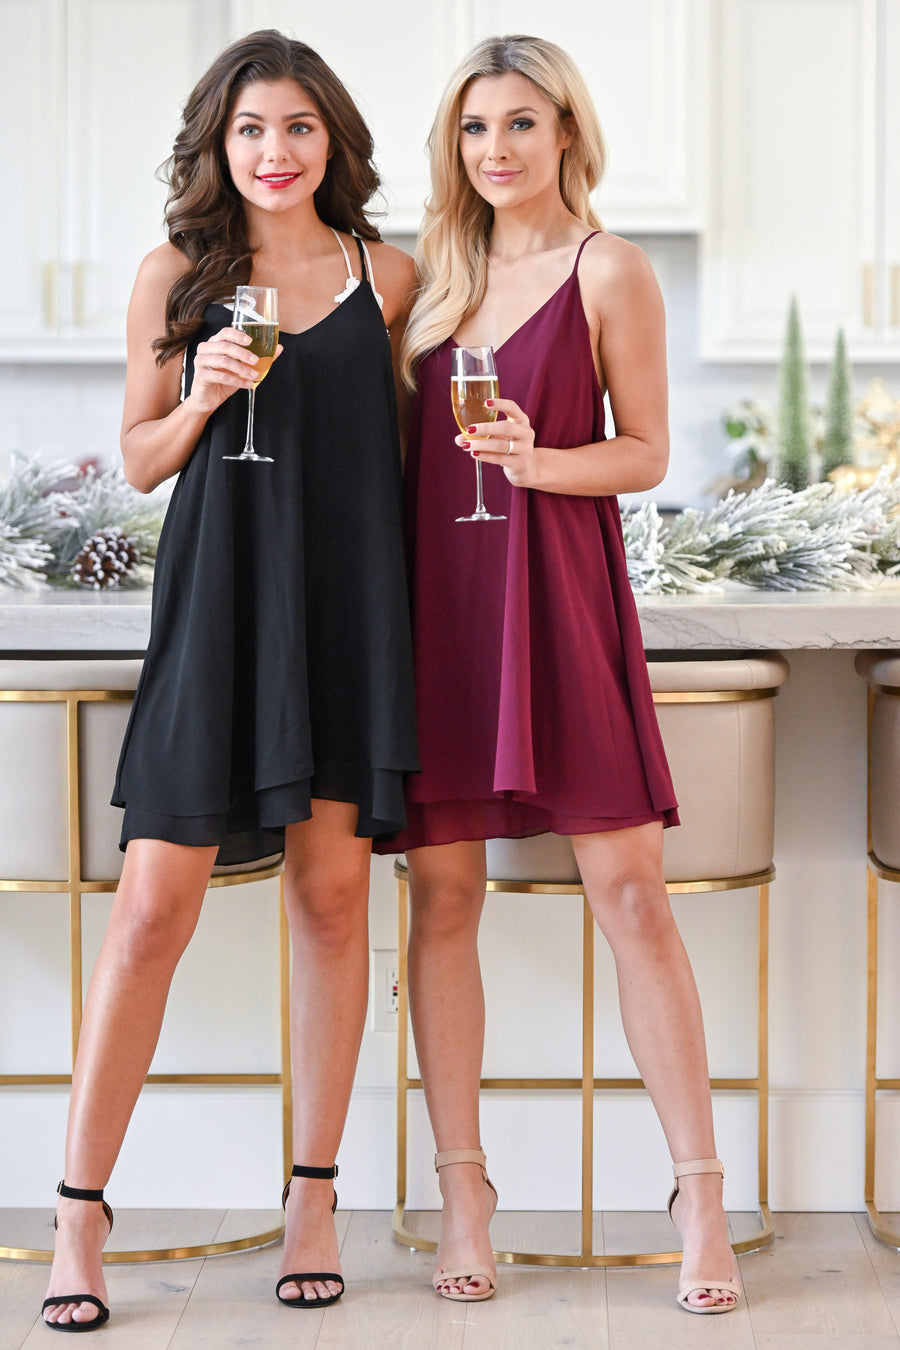 Champagne Toast Swing Dress - Plum women's flowy holiday dress, Closet Candy Boutique 1